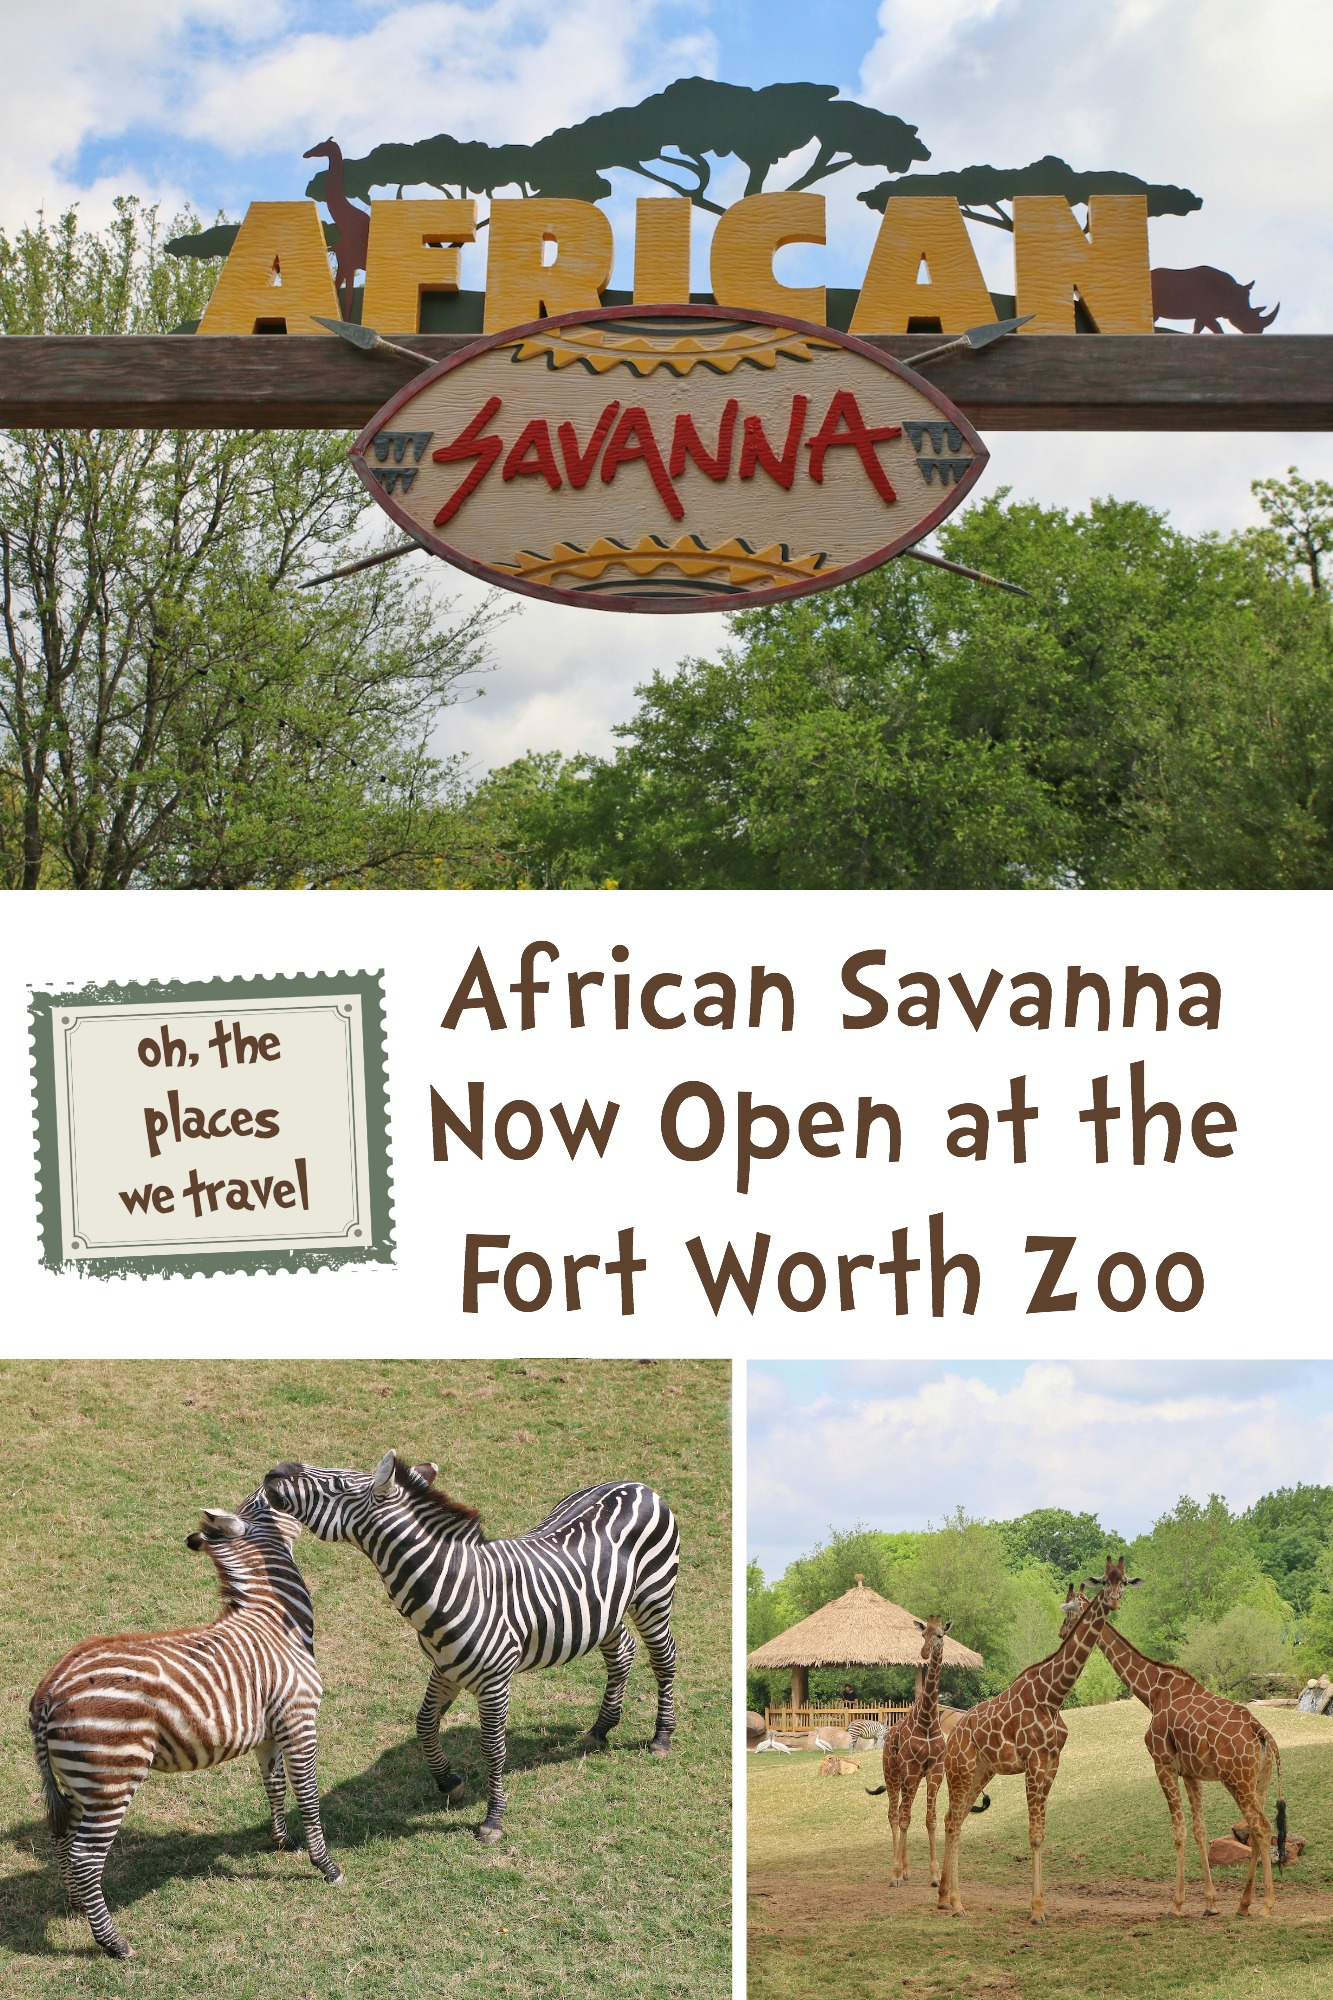 African Savanna at Fort Worth Zoo